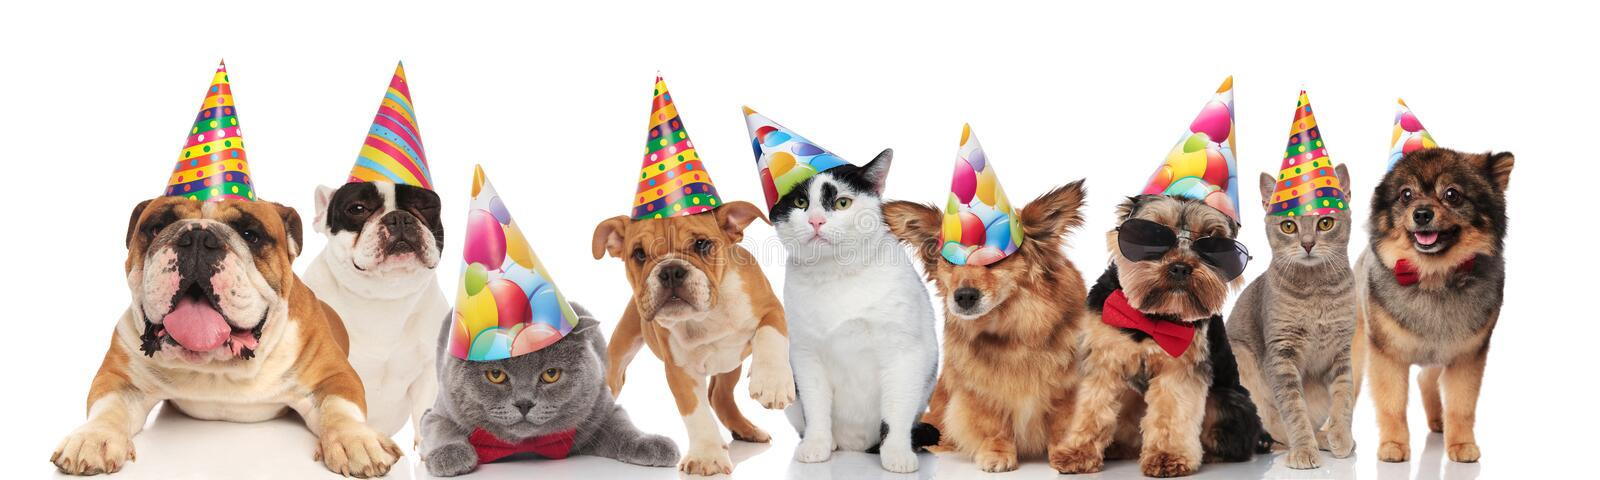 Adorable cats and dogs wearing colorful birthday hats looking funny. While standing sitting and lying on white background stock images